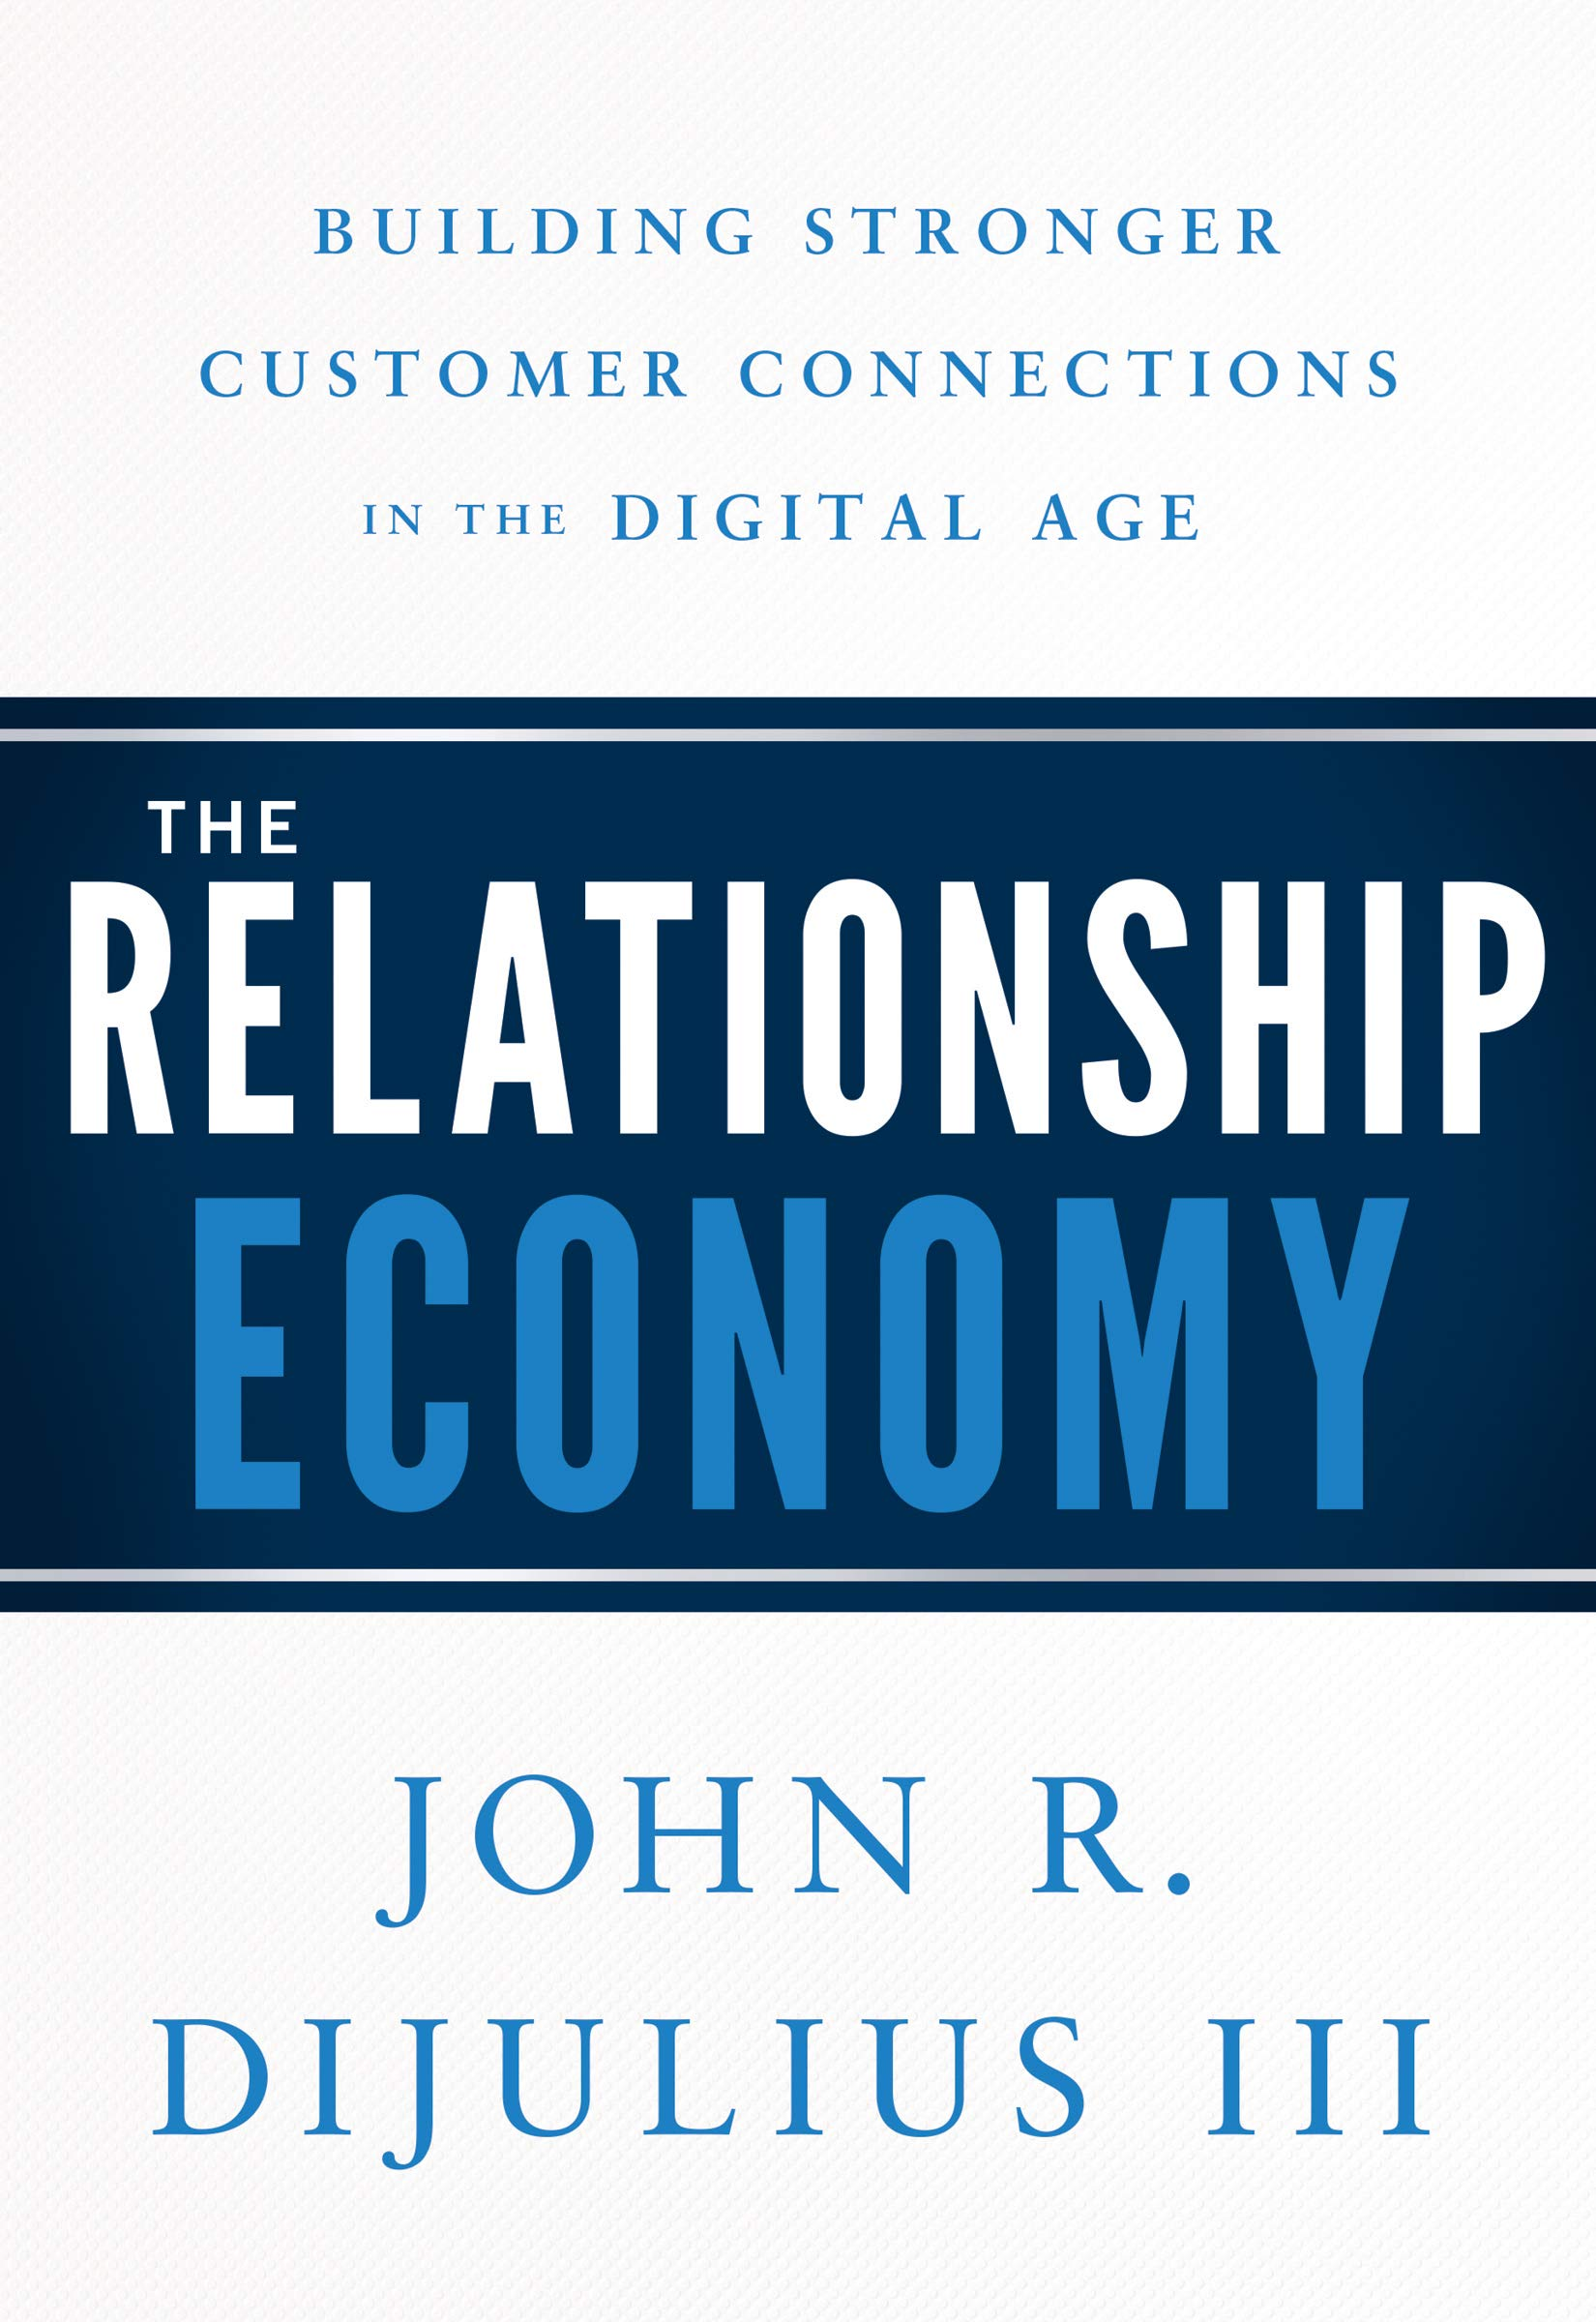 The Relationship Economy: Building Stronger Customer Connections in the Digital Age by Greenleaf Book Group Llc